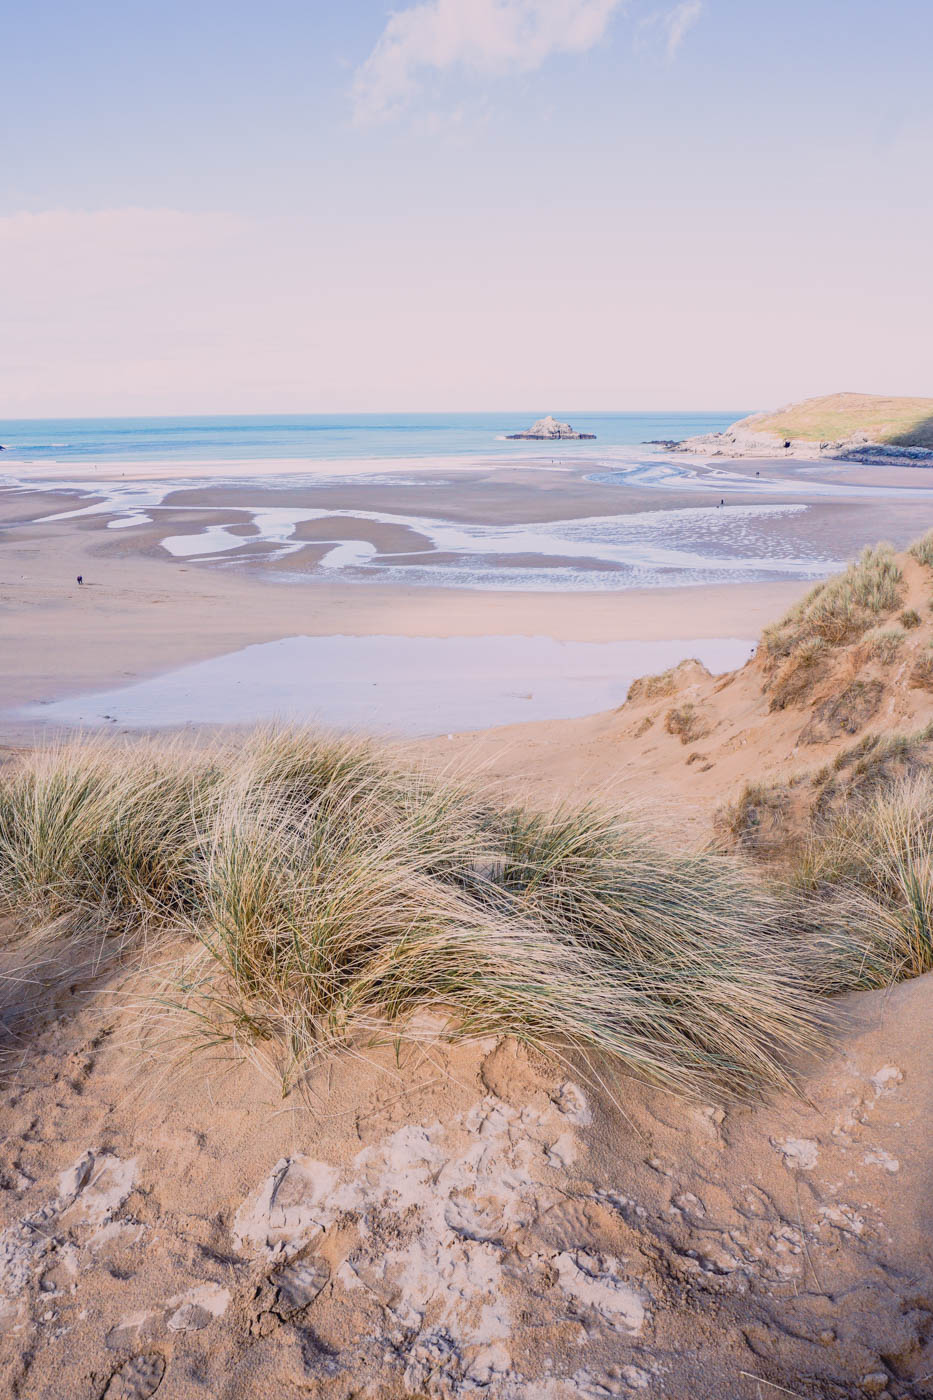 Crantock Beach, Newquay, Cornwall - Things to do in Cornwall #england #beaches